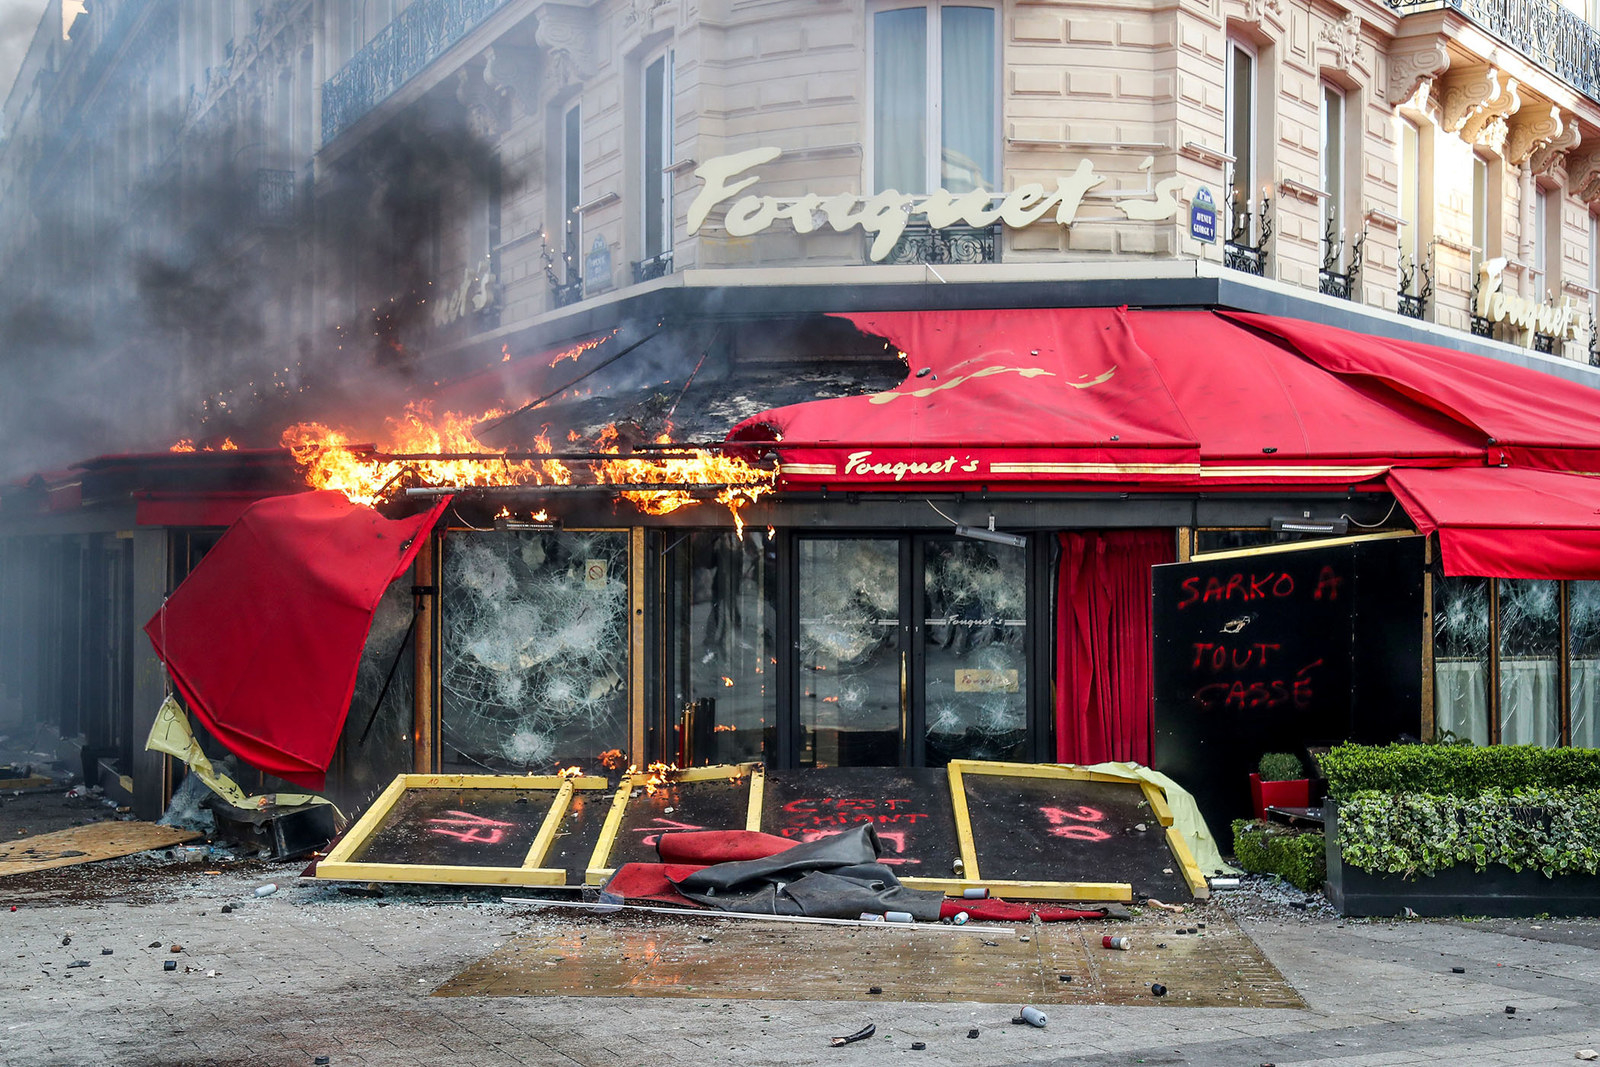 A restaurant is set on fire during clashes with riot police in Paris on March 16, during the 18th consecutive Saturday of demonstrations called by the 'Yellow Vest' movement.